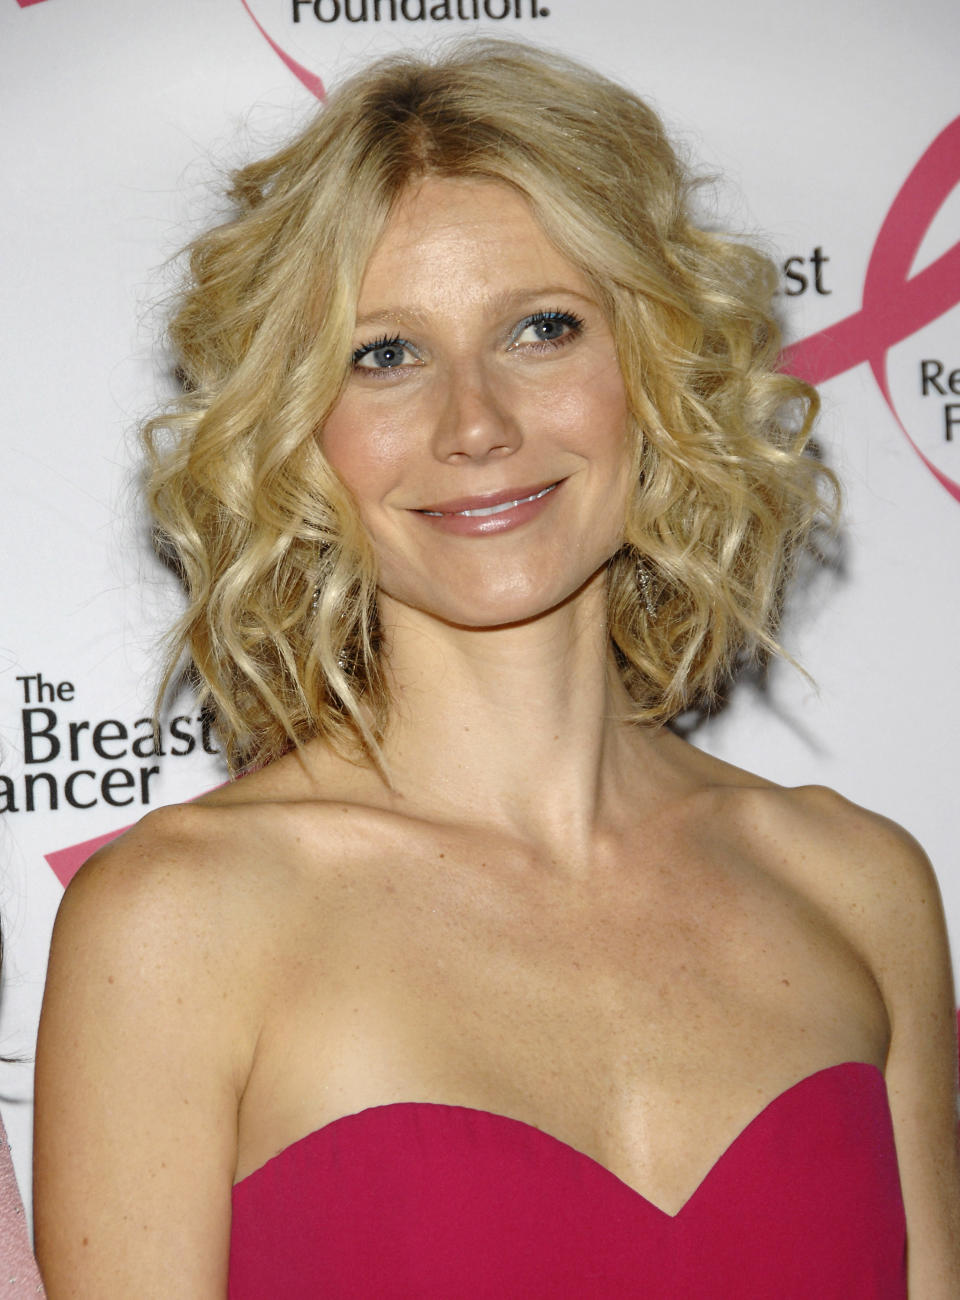 """Actress Gwyneth Paltrow attends The Breast Cancer Research Foundation's """"Hottest Pink Party Ever"""" benefit at The Waldorf-Astoria, Tuesday, April 8, 2008 in New York. (AP Photo/Evan Agostini)"""